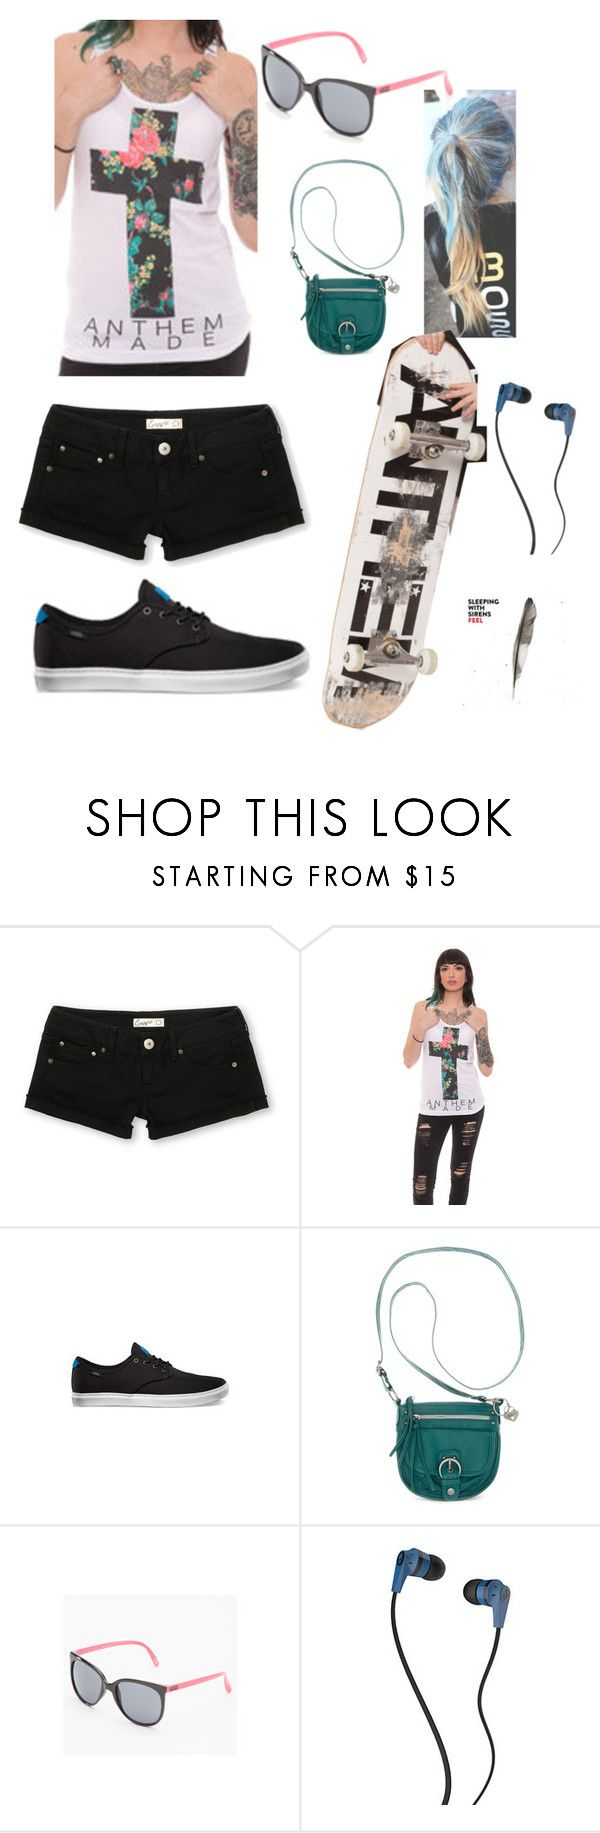 """Anthem Made"" by ferny117 ❤ liked on Polyvore featuring Daniblack, American Rag Cie, Vans, Skullcandy, sleepingwithsirens, kellinquinn, feel and anthemmade"